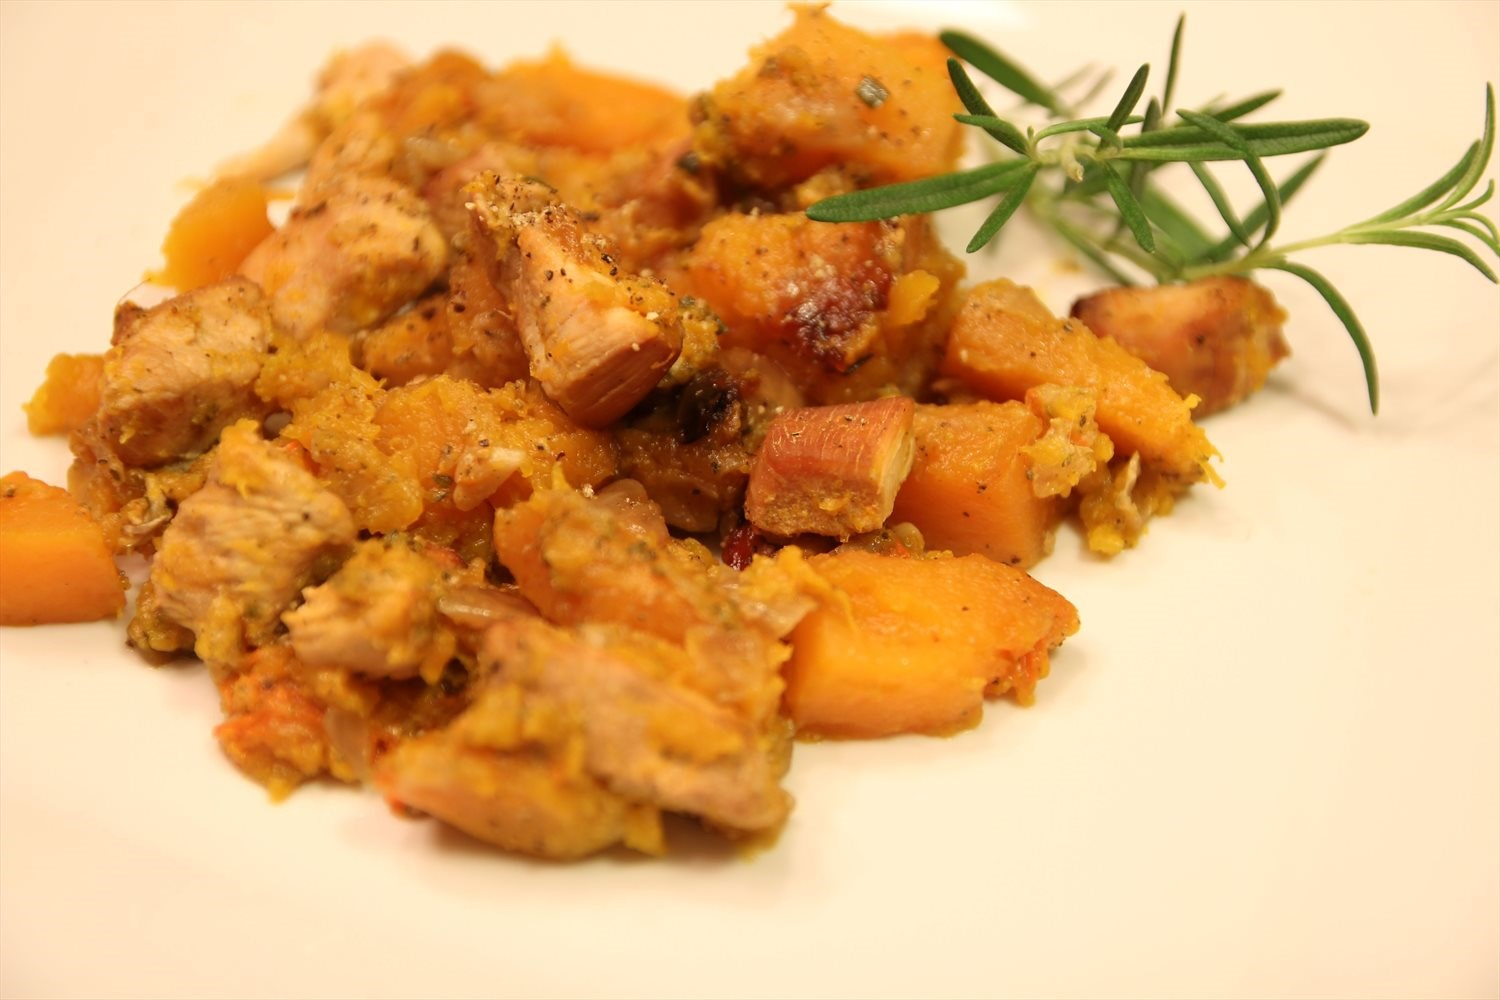 Crockpot Chicken with Butternut Squash